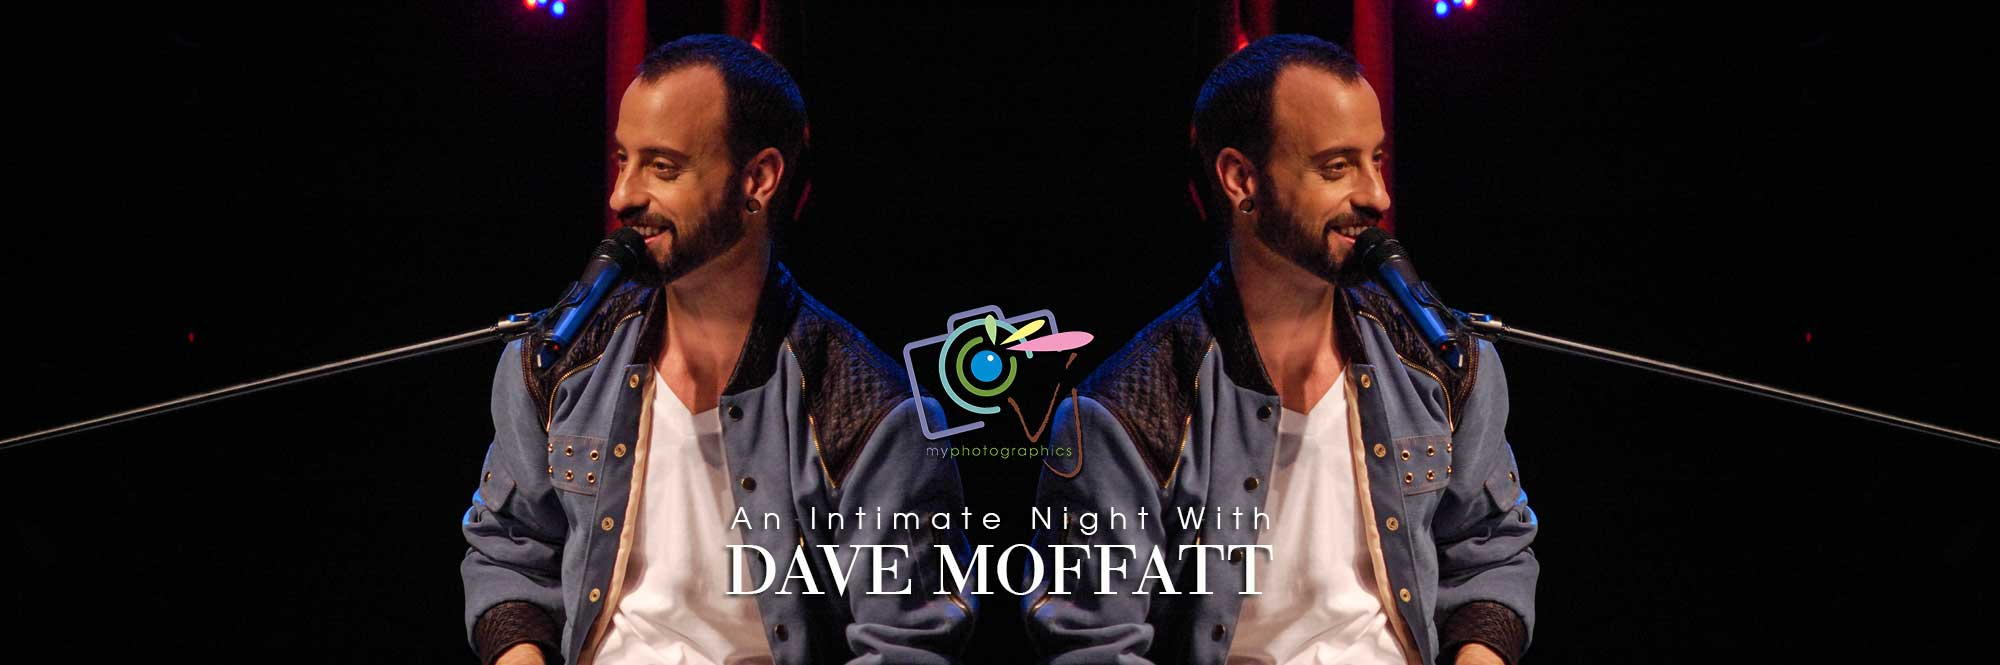 An Intimate Night with Dave Moffatt (22)